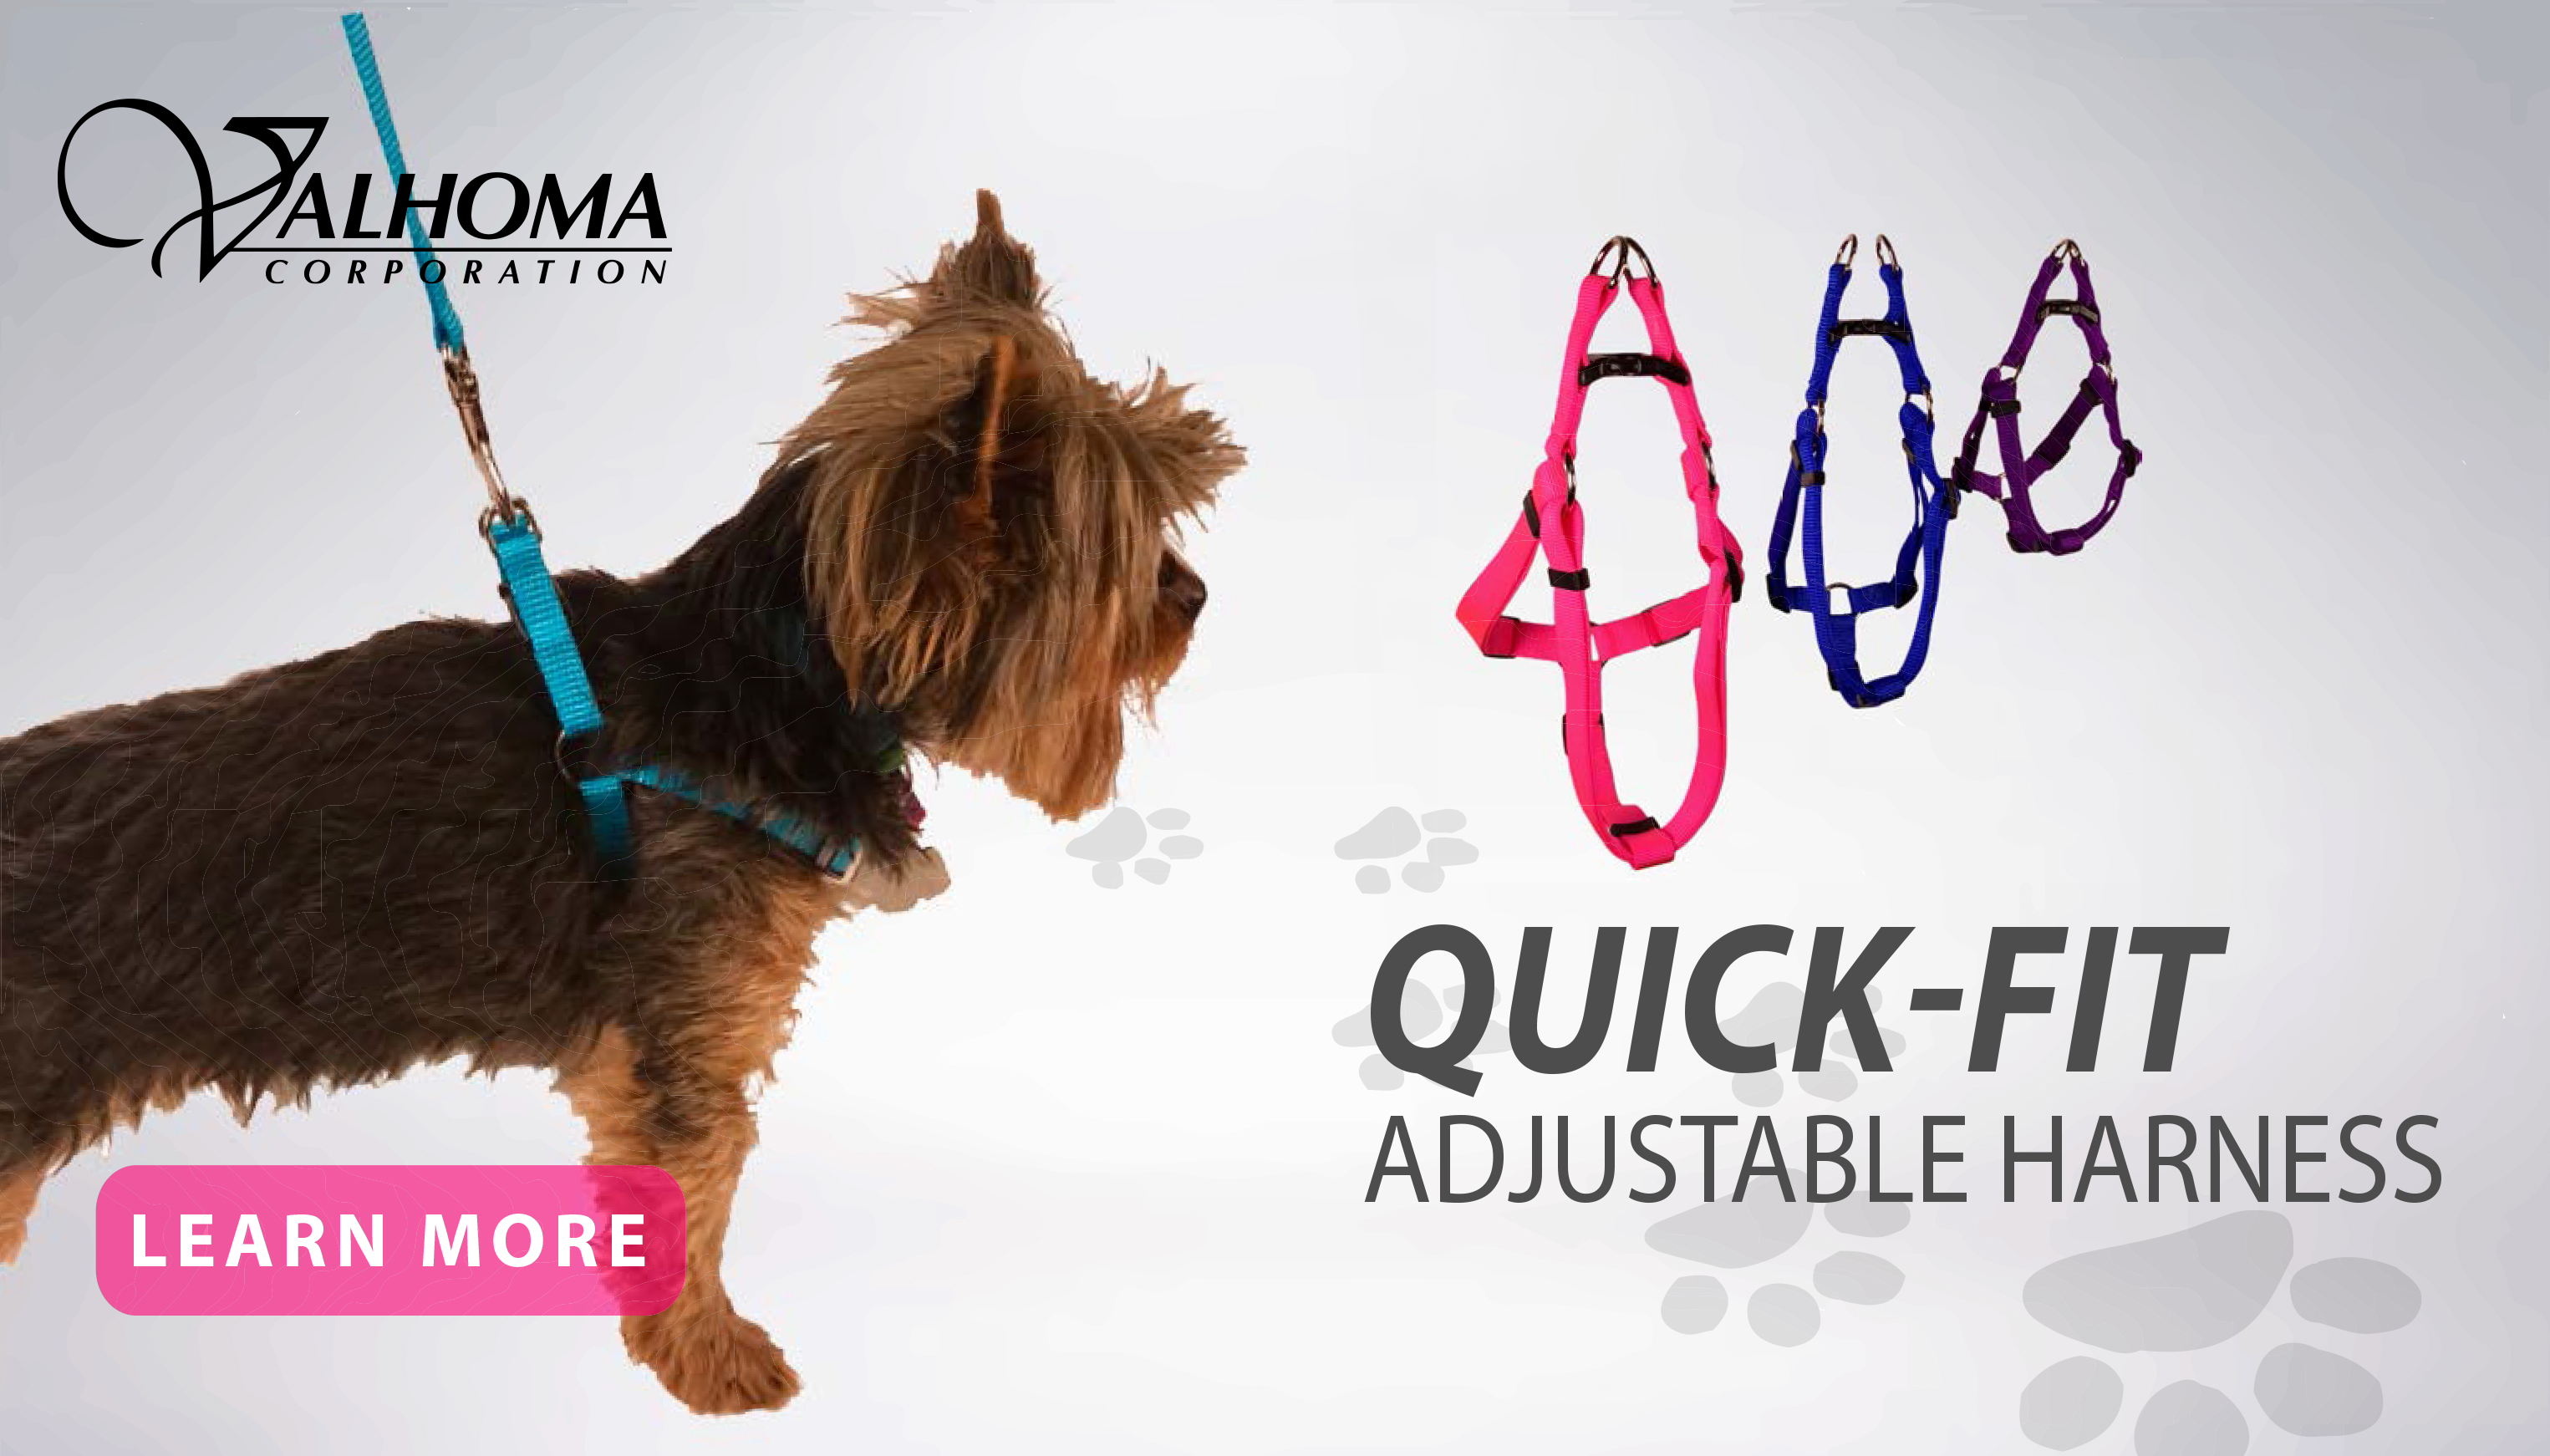 New at JMI Pet Supply – Valhoma Quick-Fit Adjustable Harness